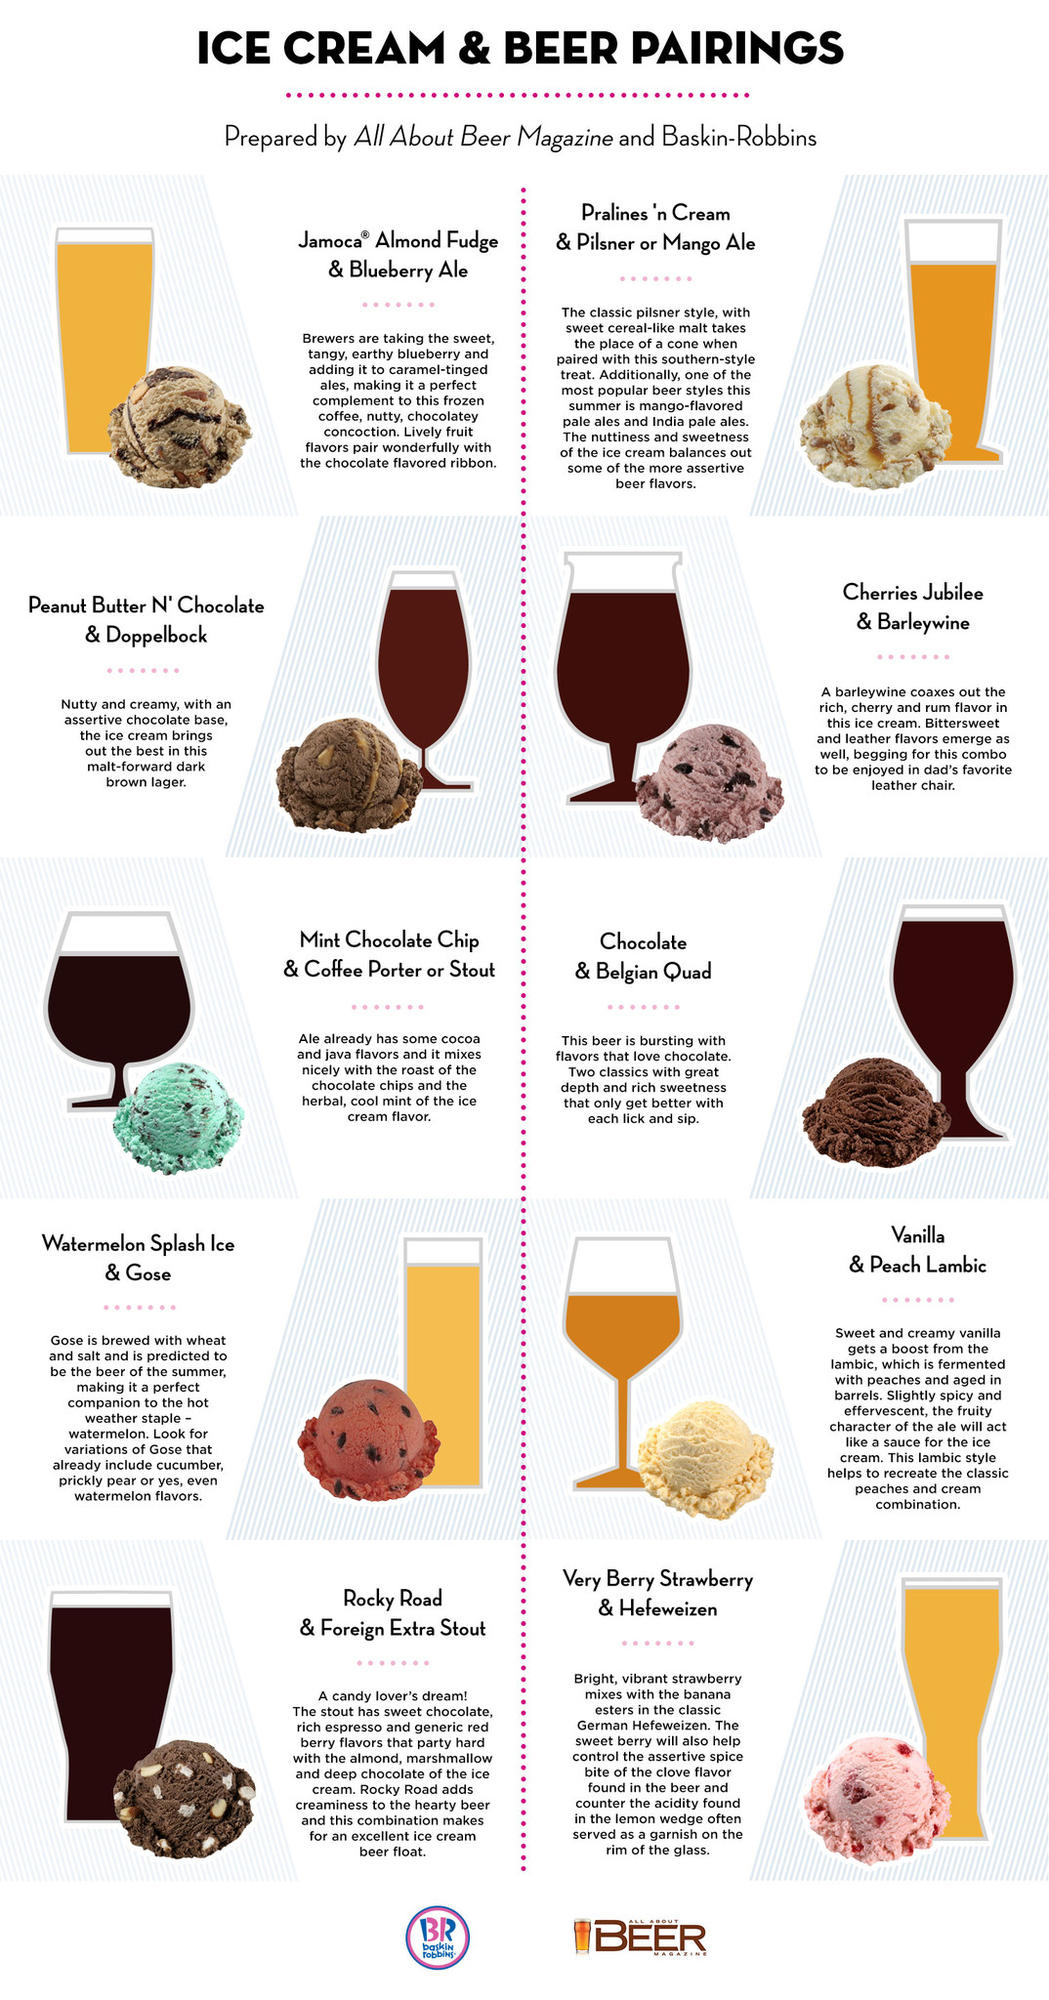 """A beer and ice cream pairings infographic by Baskin-Robbins and """"All About Beer"""" magazine"""